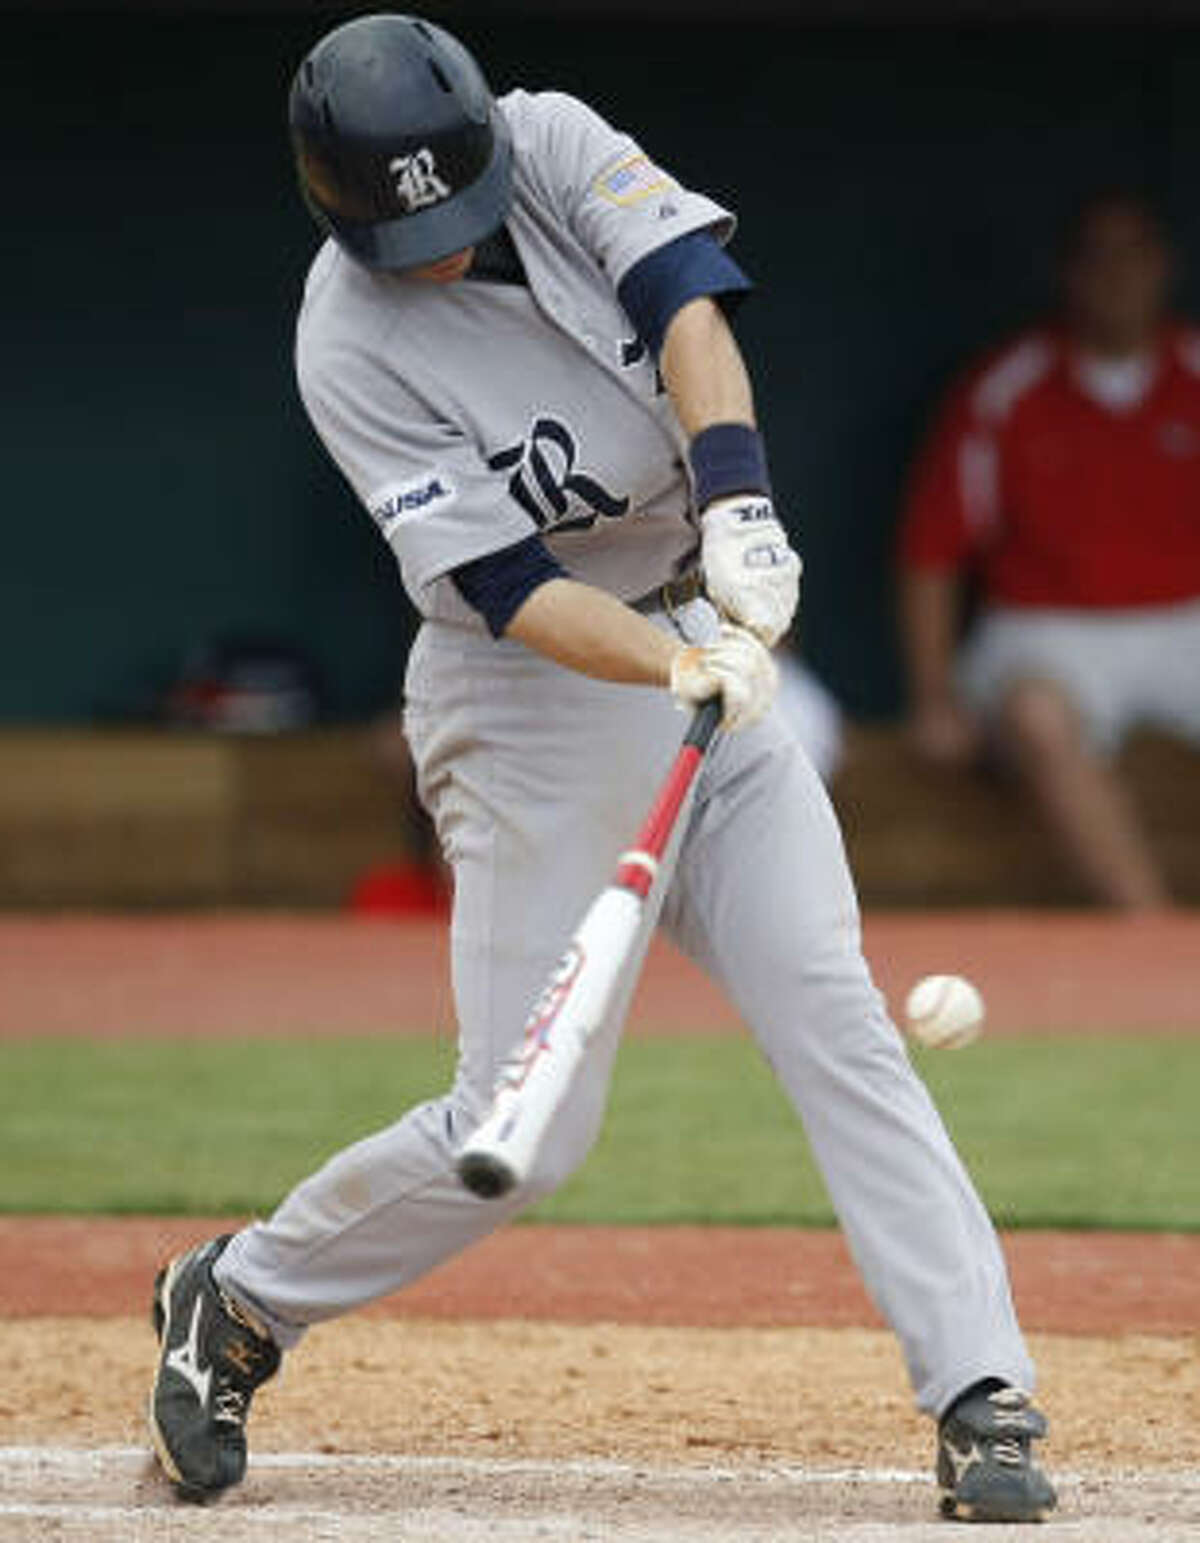 Rice shortstop Rick Hague hit .340 with 15 home runs and 55 RBIs for the Owls this season.